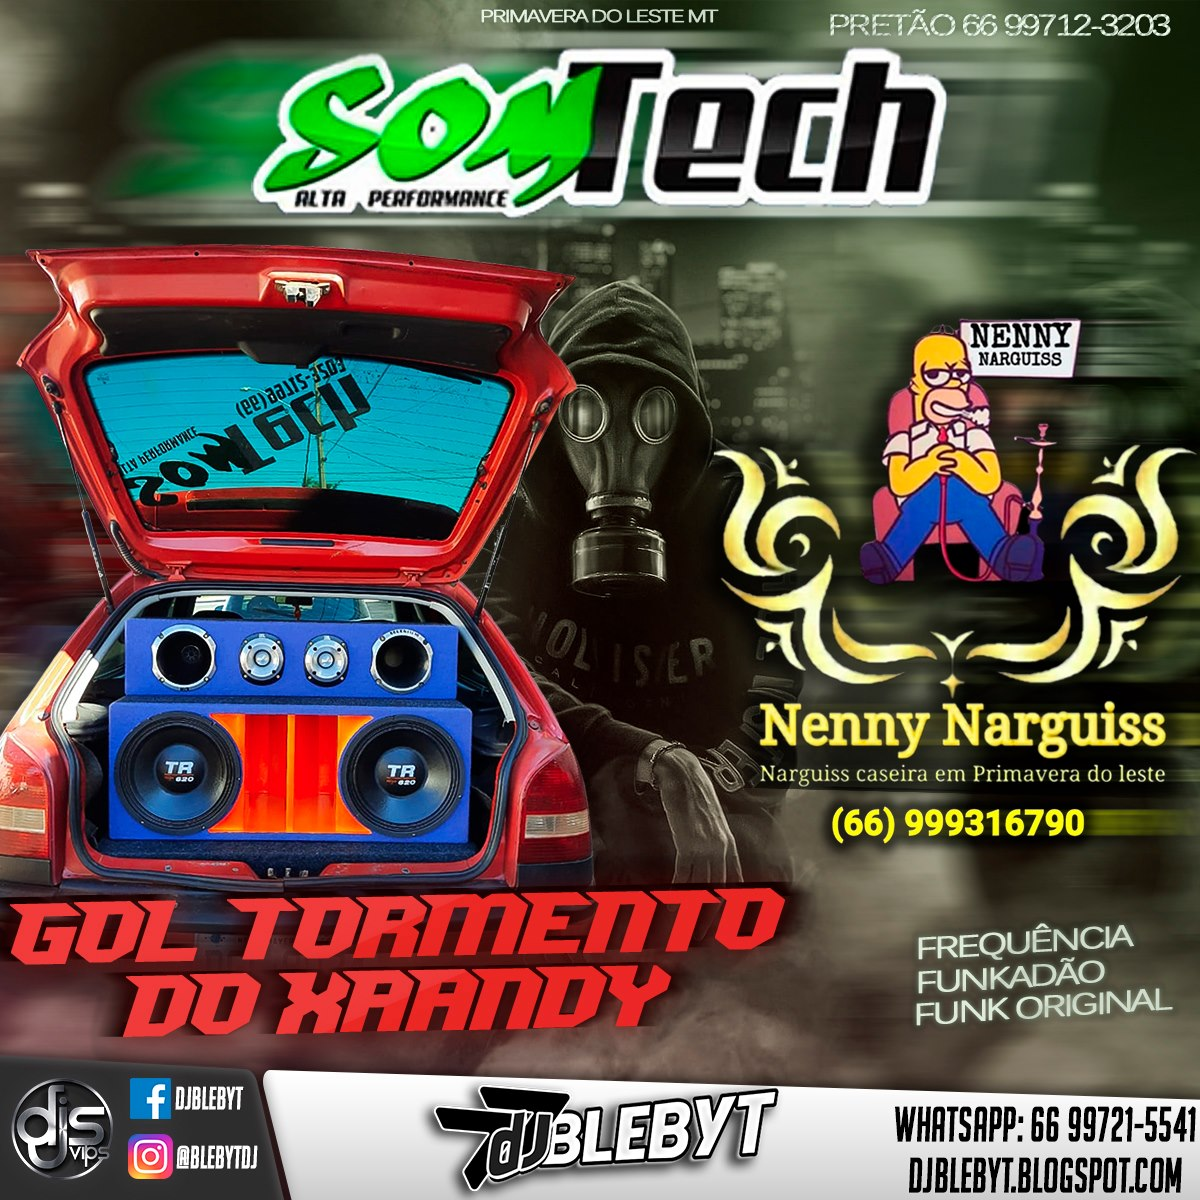 CD GOL TORMENTO DO XAANDY & NENNY NARGUISS – DJ BLEBYT